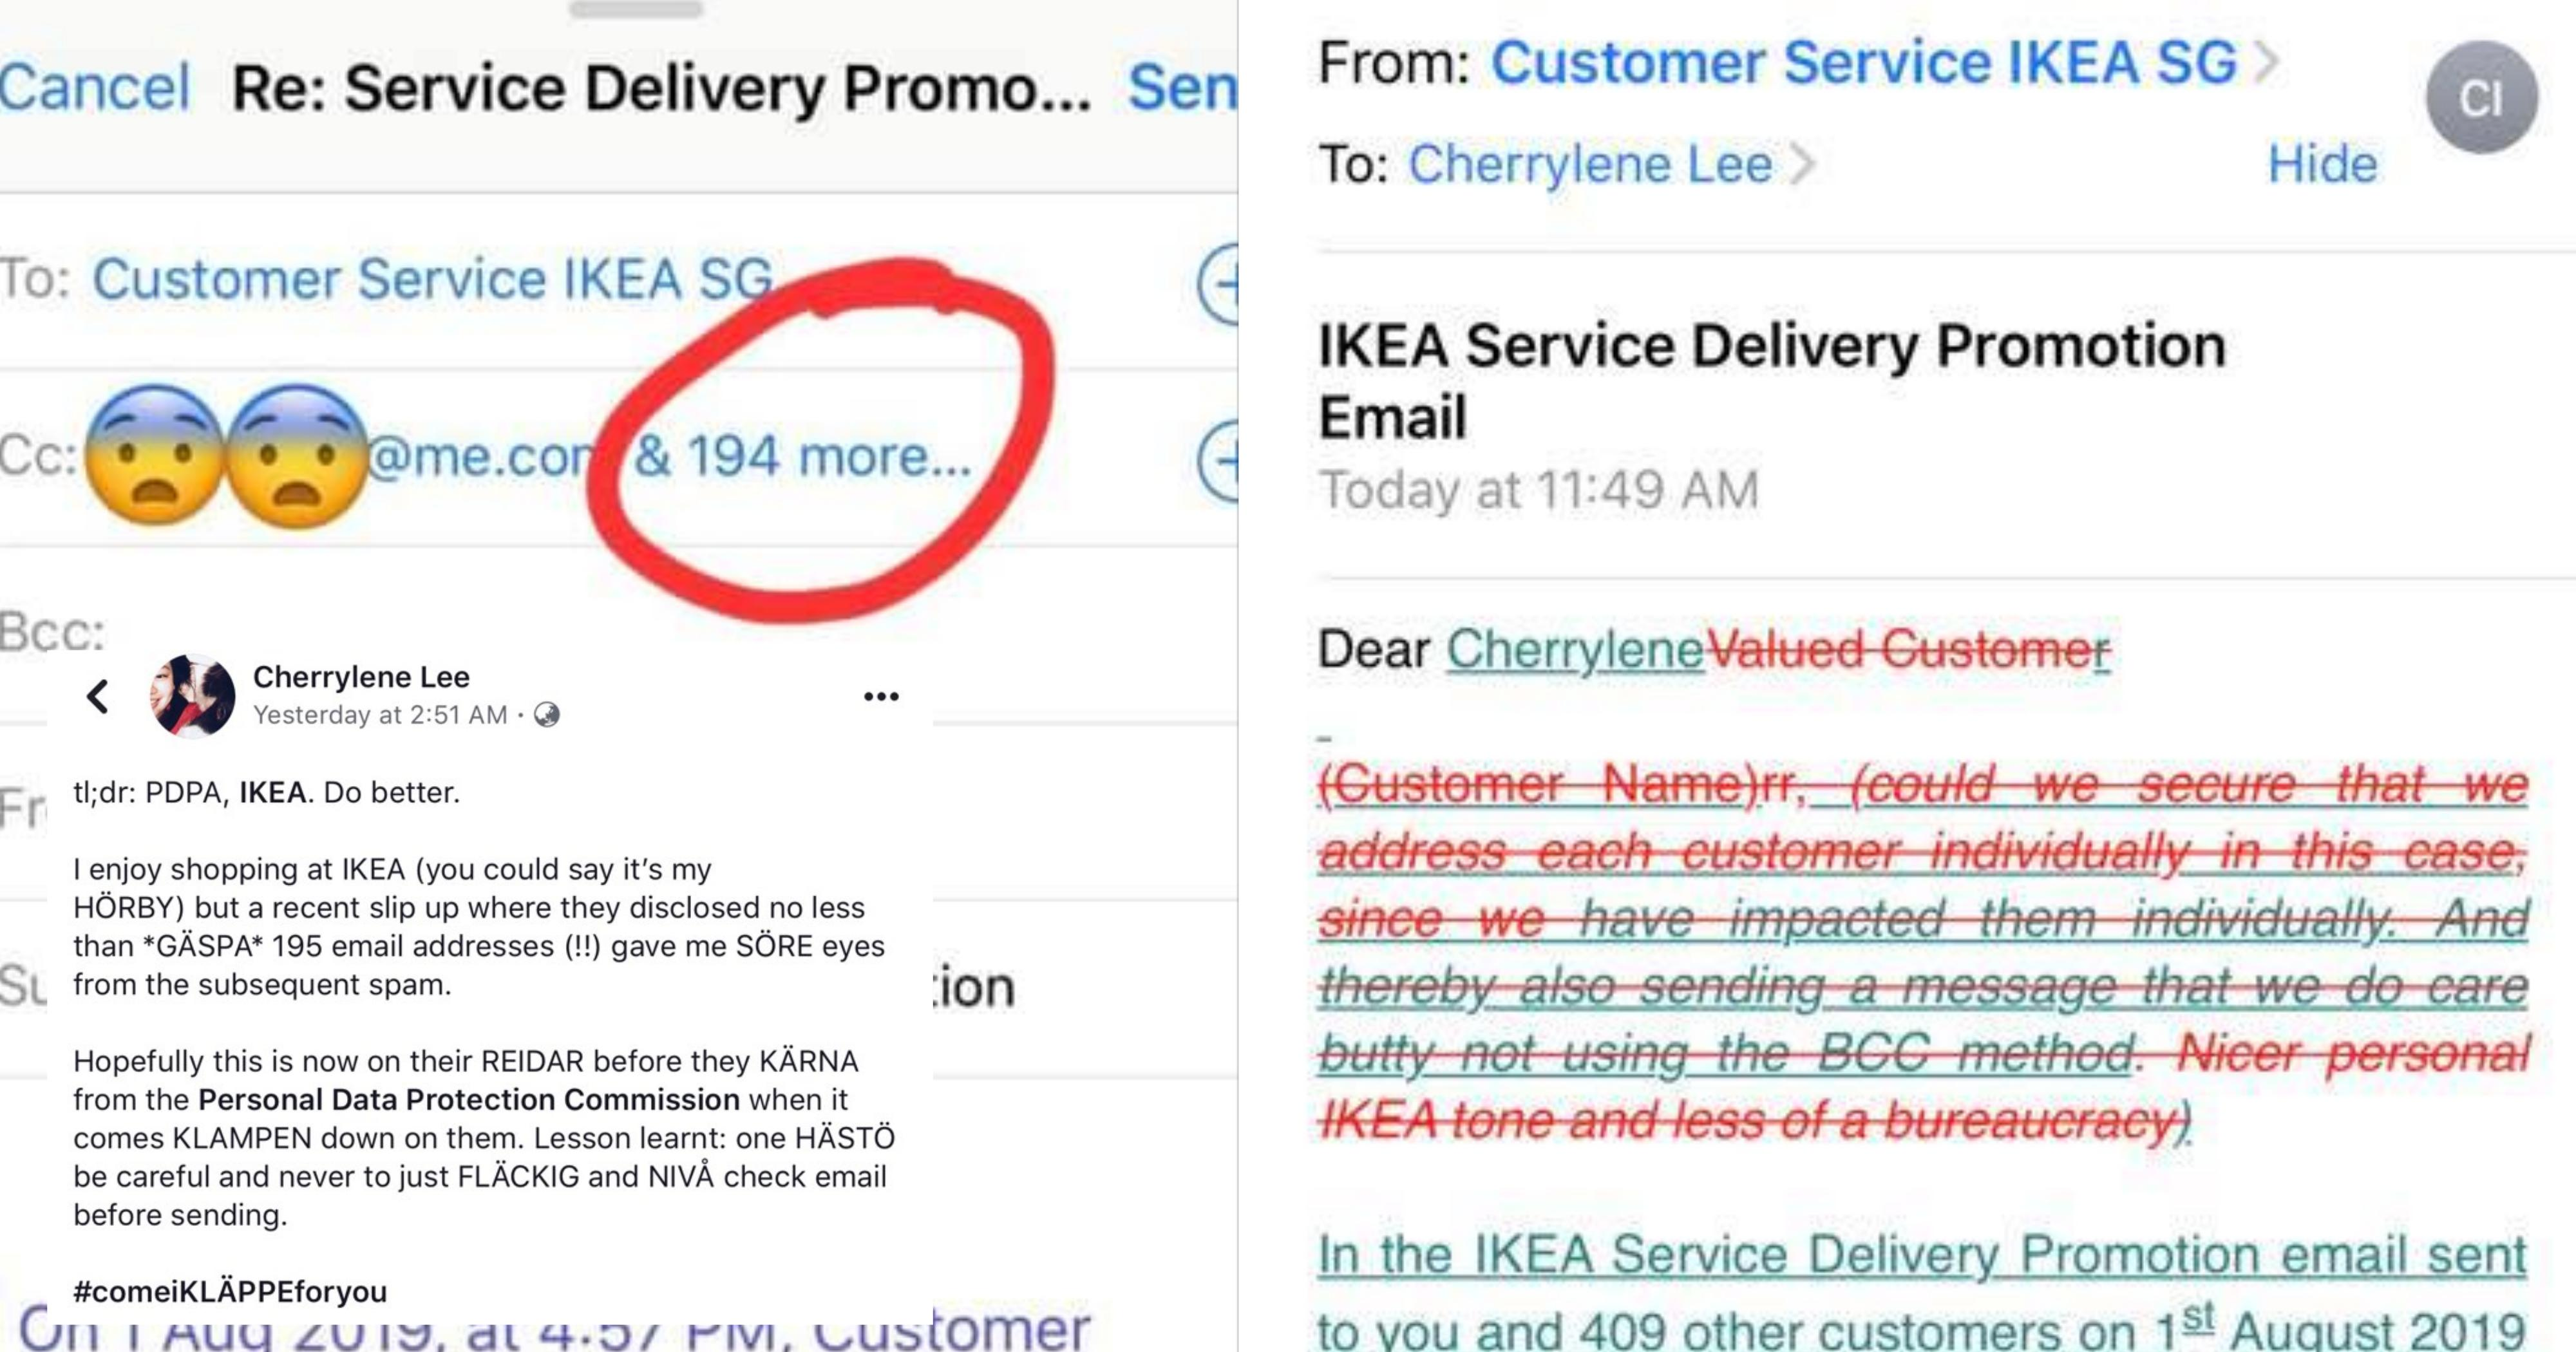 Ikea S Pore Allegedly Leaked 195 Email Addresses Best Part The Follow Up Apology Mothership Sg News From Singapore Asia And Around The World,Diy Gifts For Friends Going To College